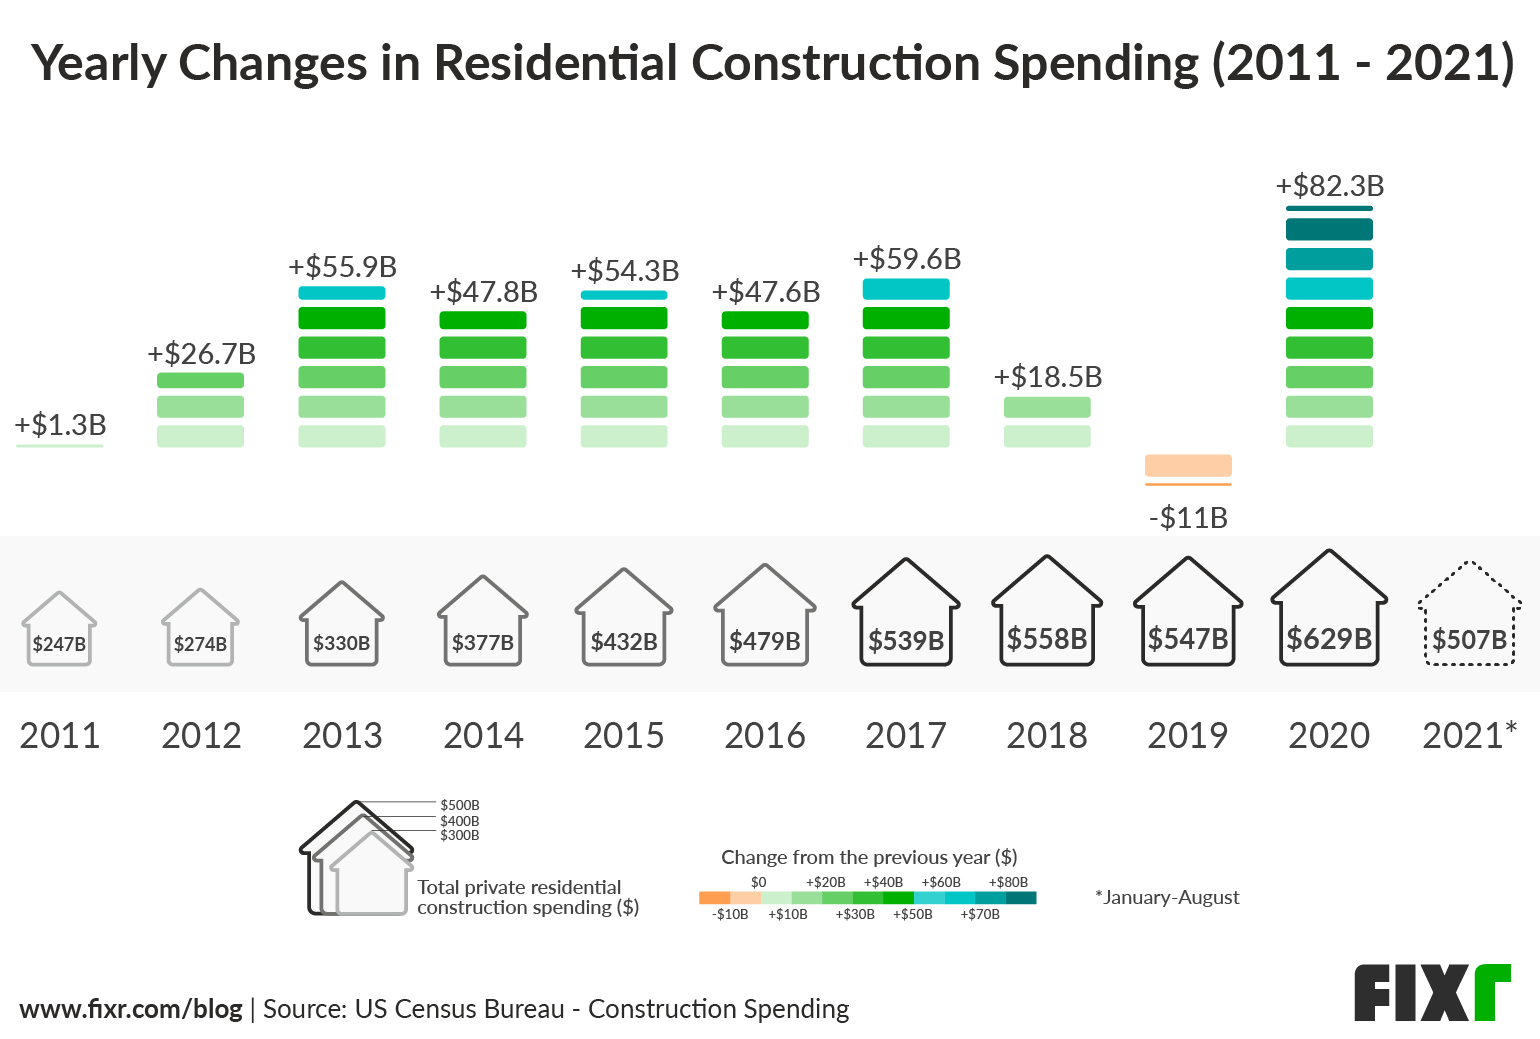 Residential Construction Spending - Increase 2011 - 2021